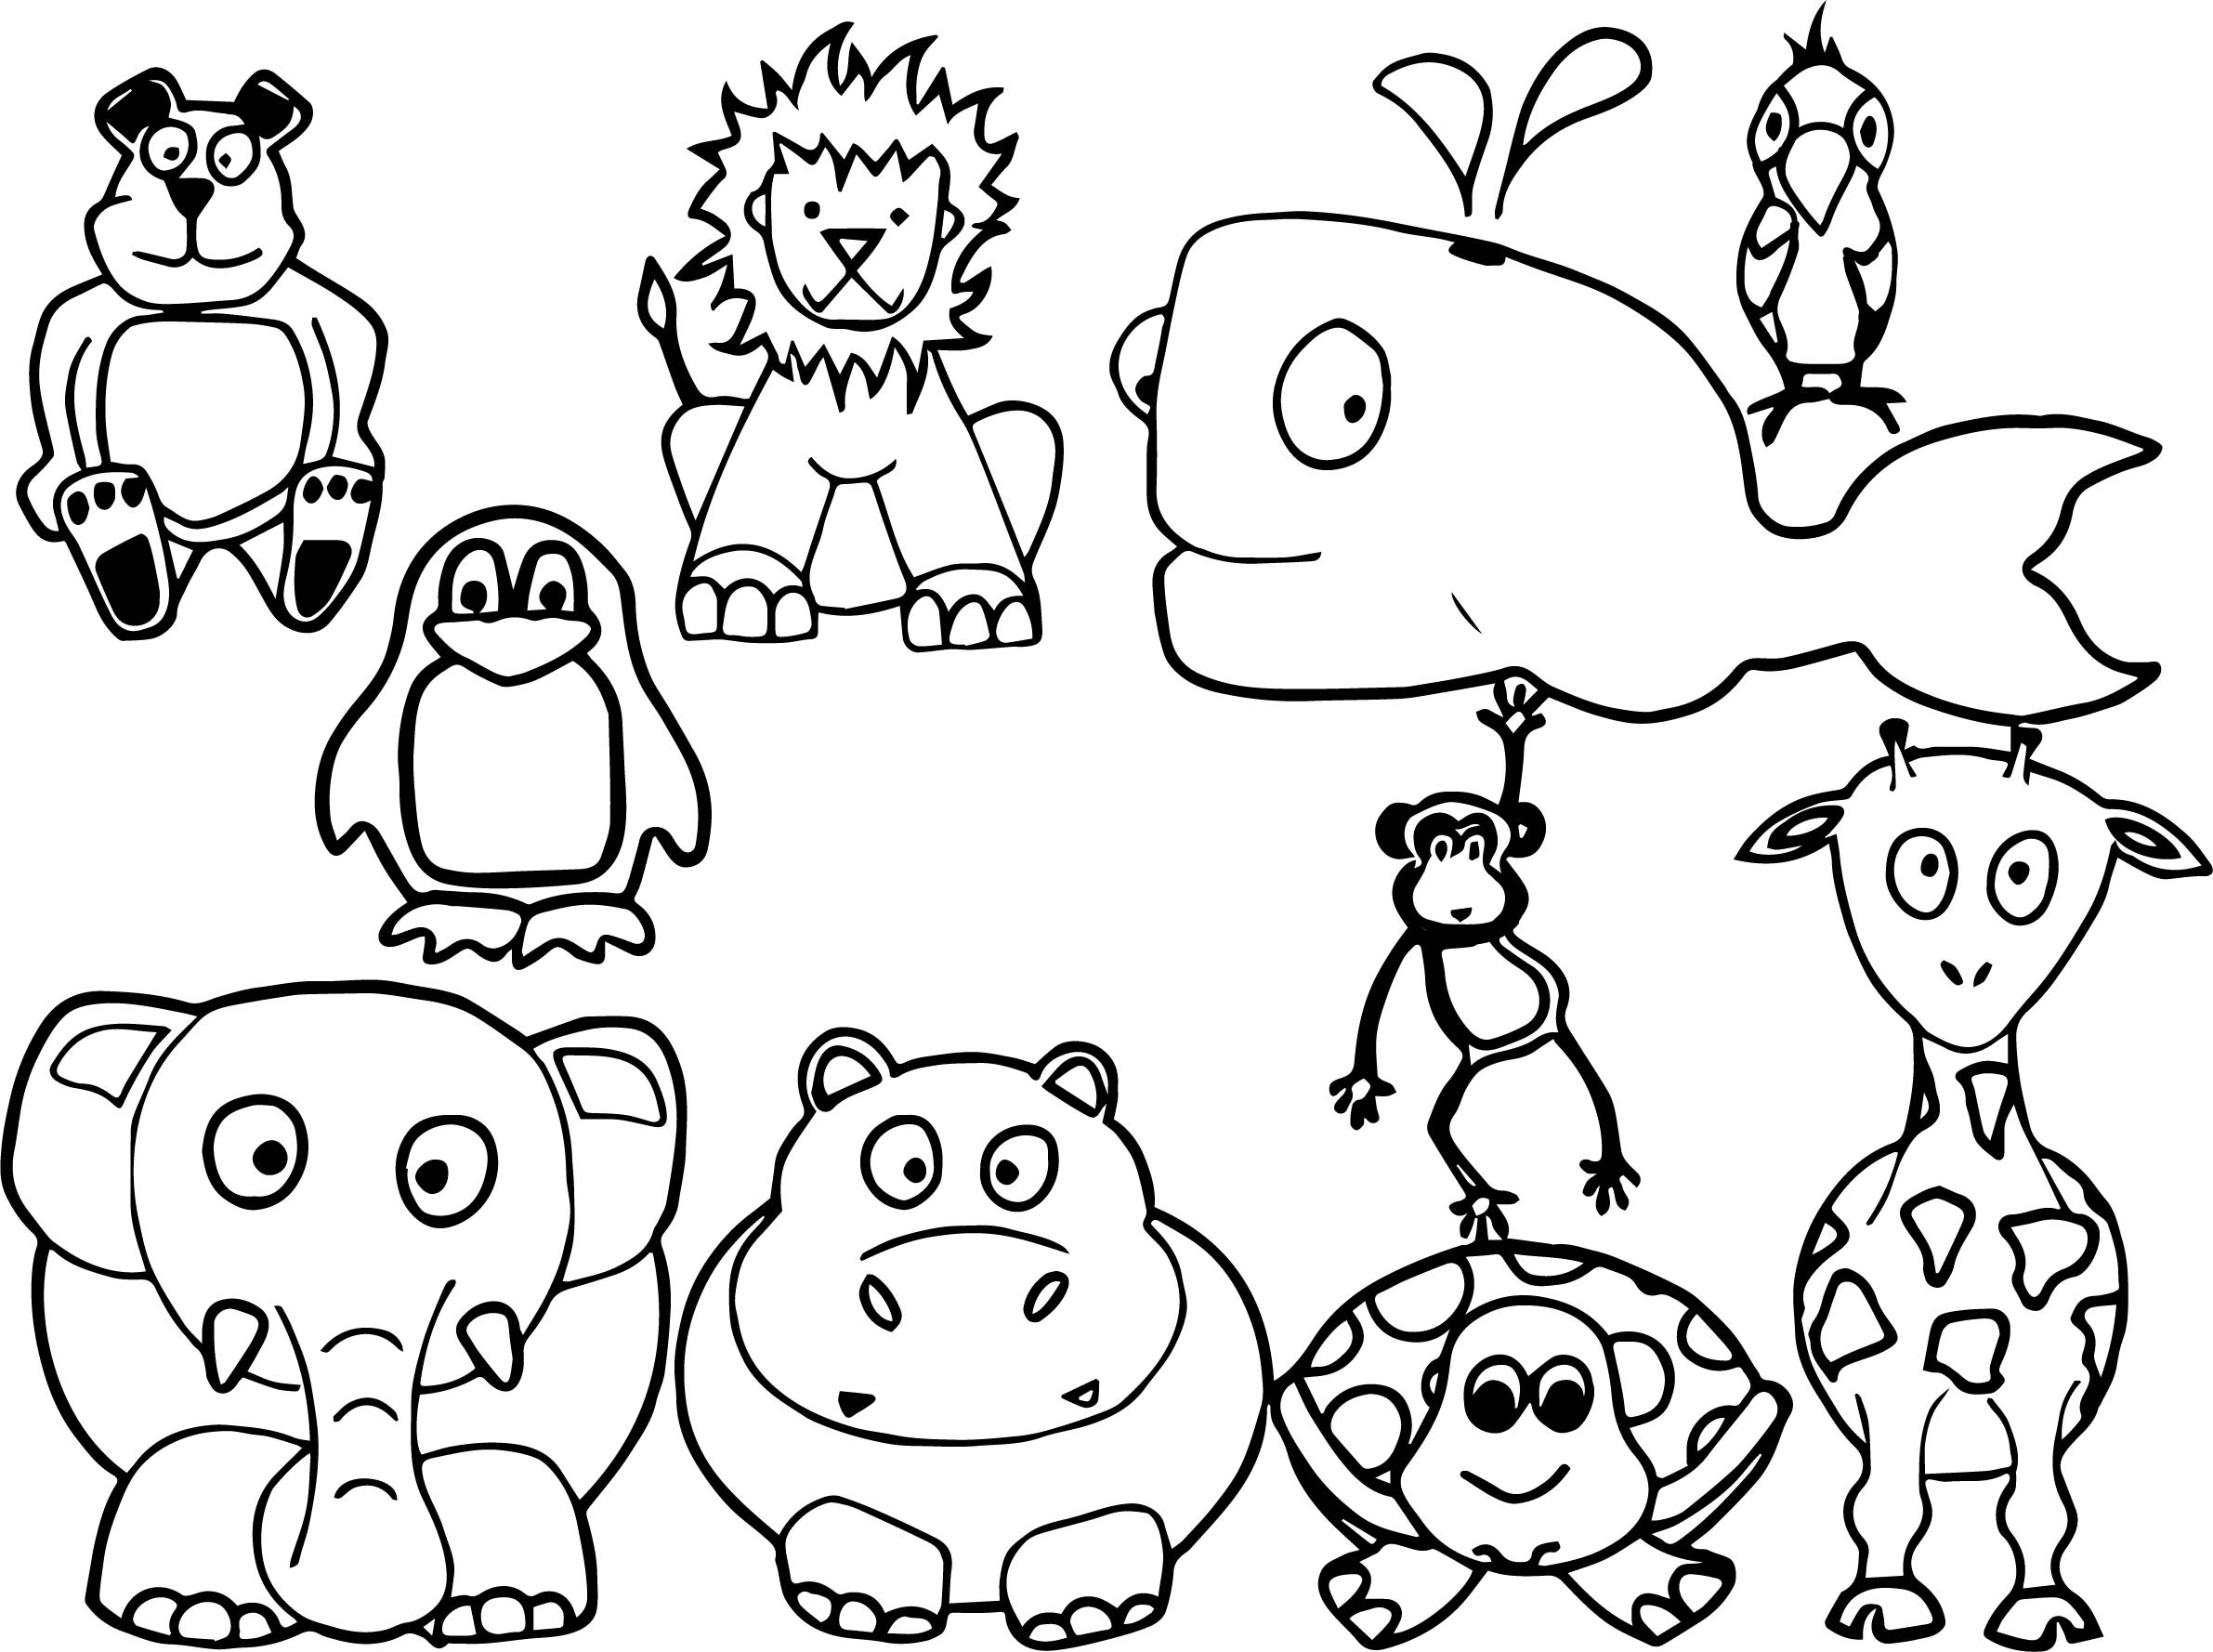 All baby farm animal coloring page Coloring book pictures of farm animals